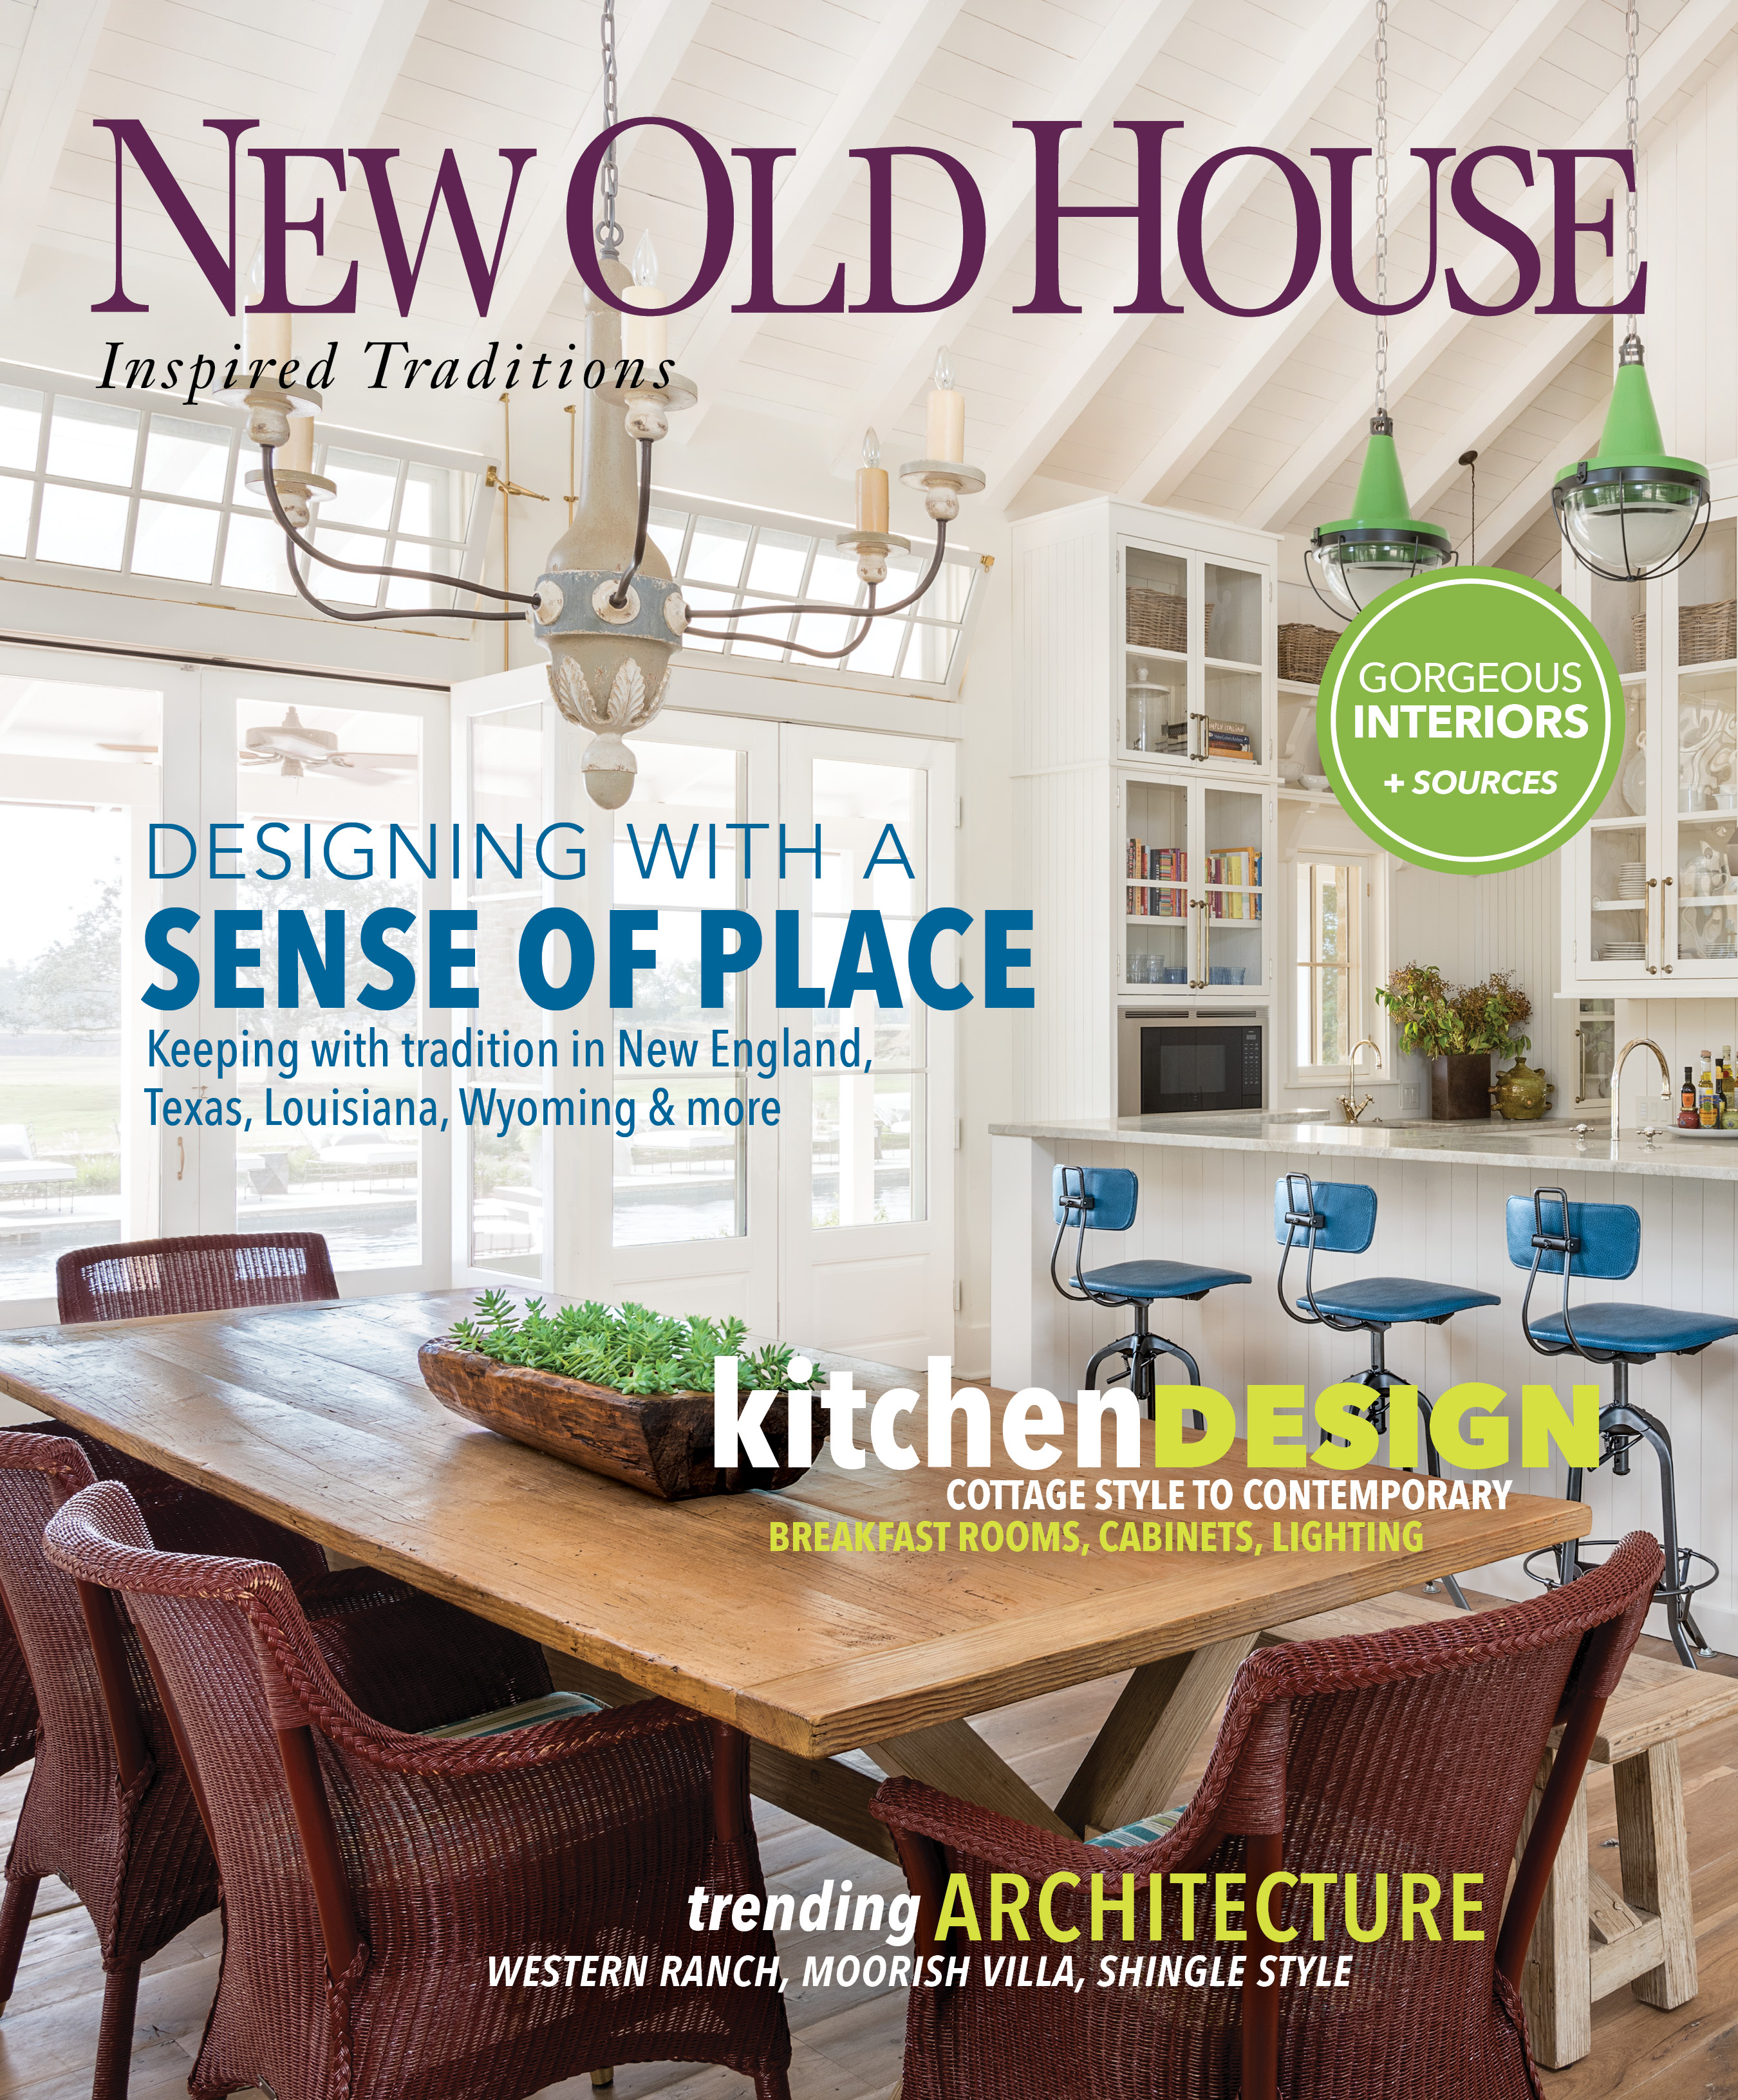 New Old House magazine's Winter 2019 issue